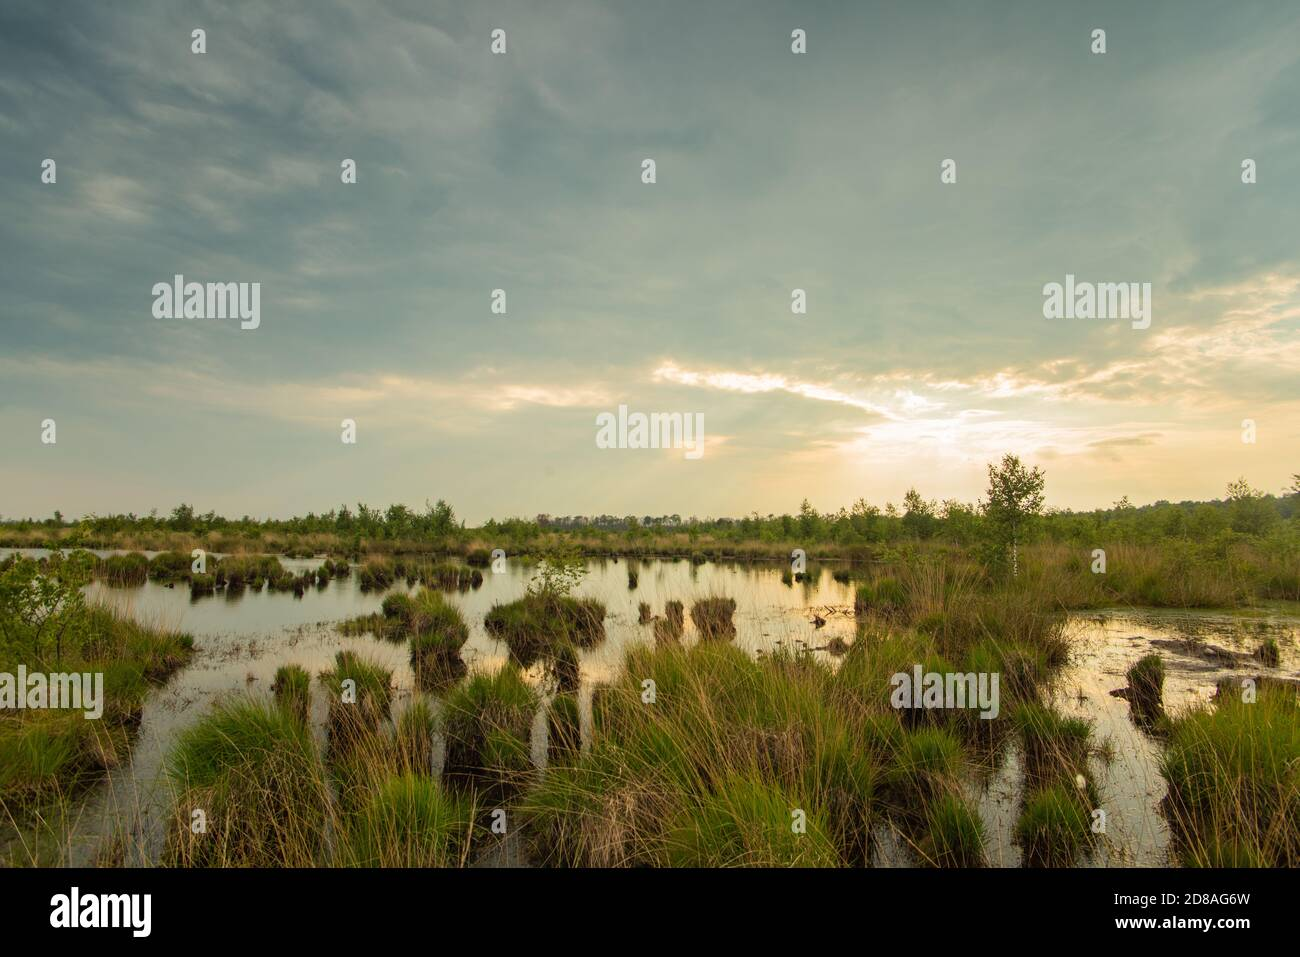 Scenic view of moor landscape in Lower Saxony. The Great Moor is part of the moorland between Barnsdorf and Vechta. Setting sun reflected in water. Stock Photo